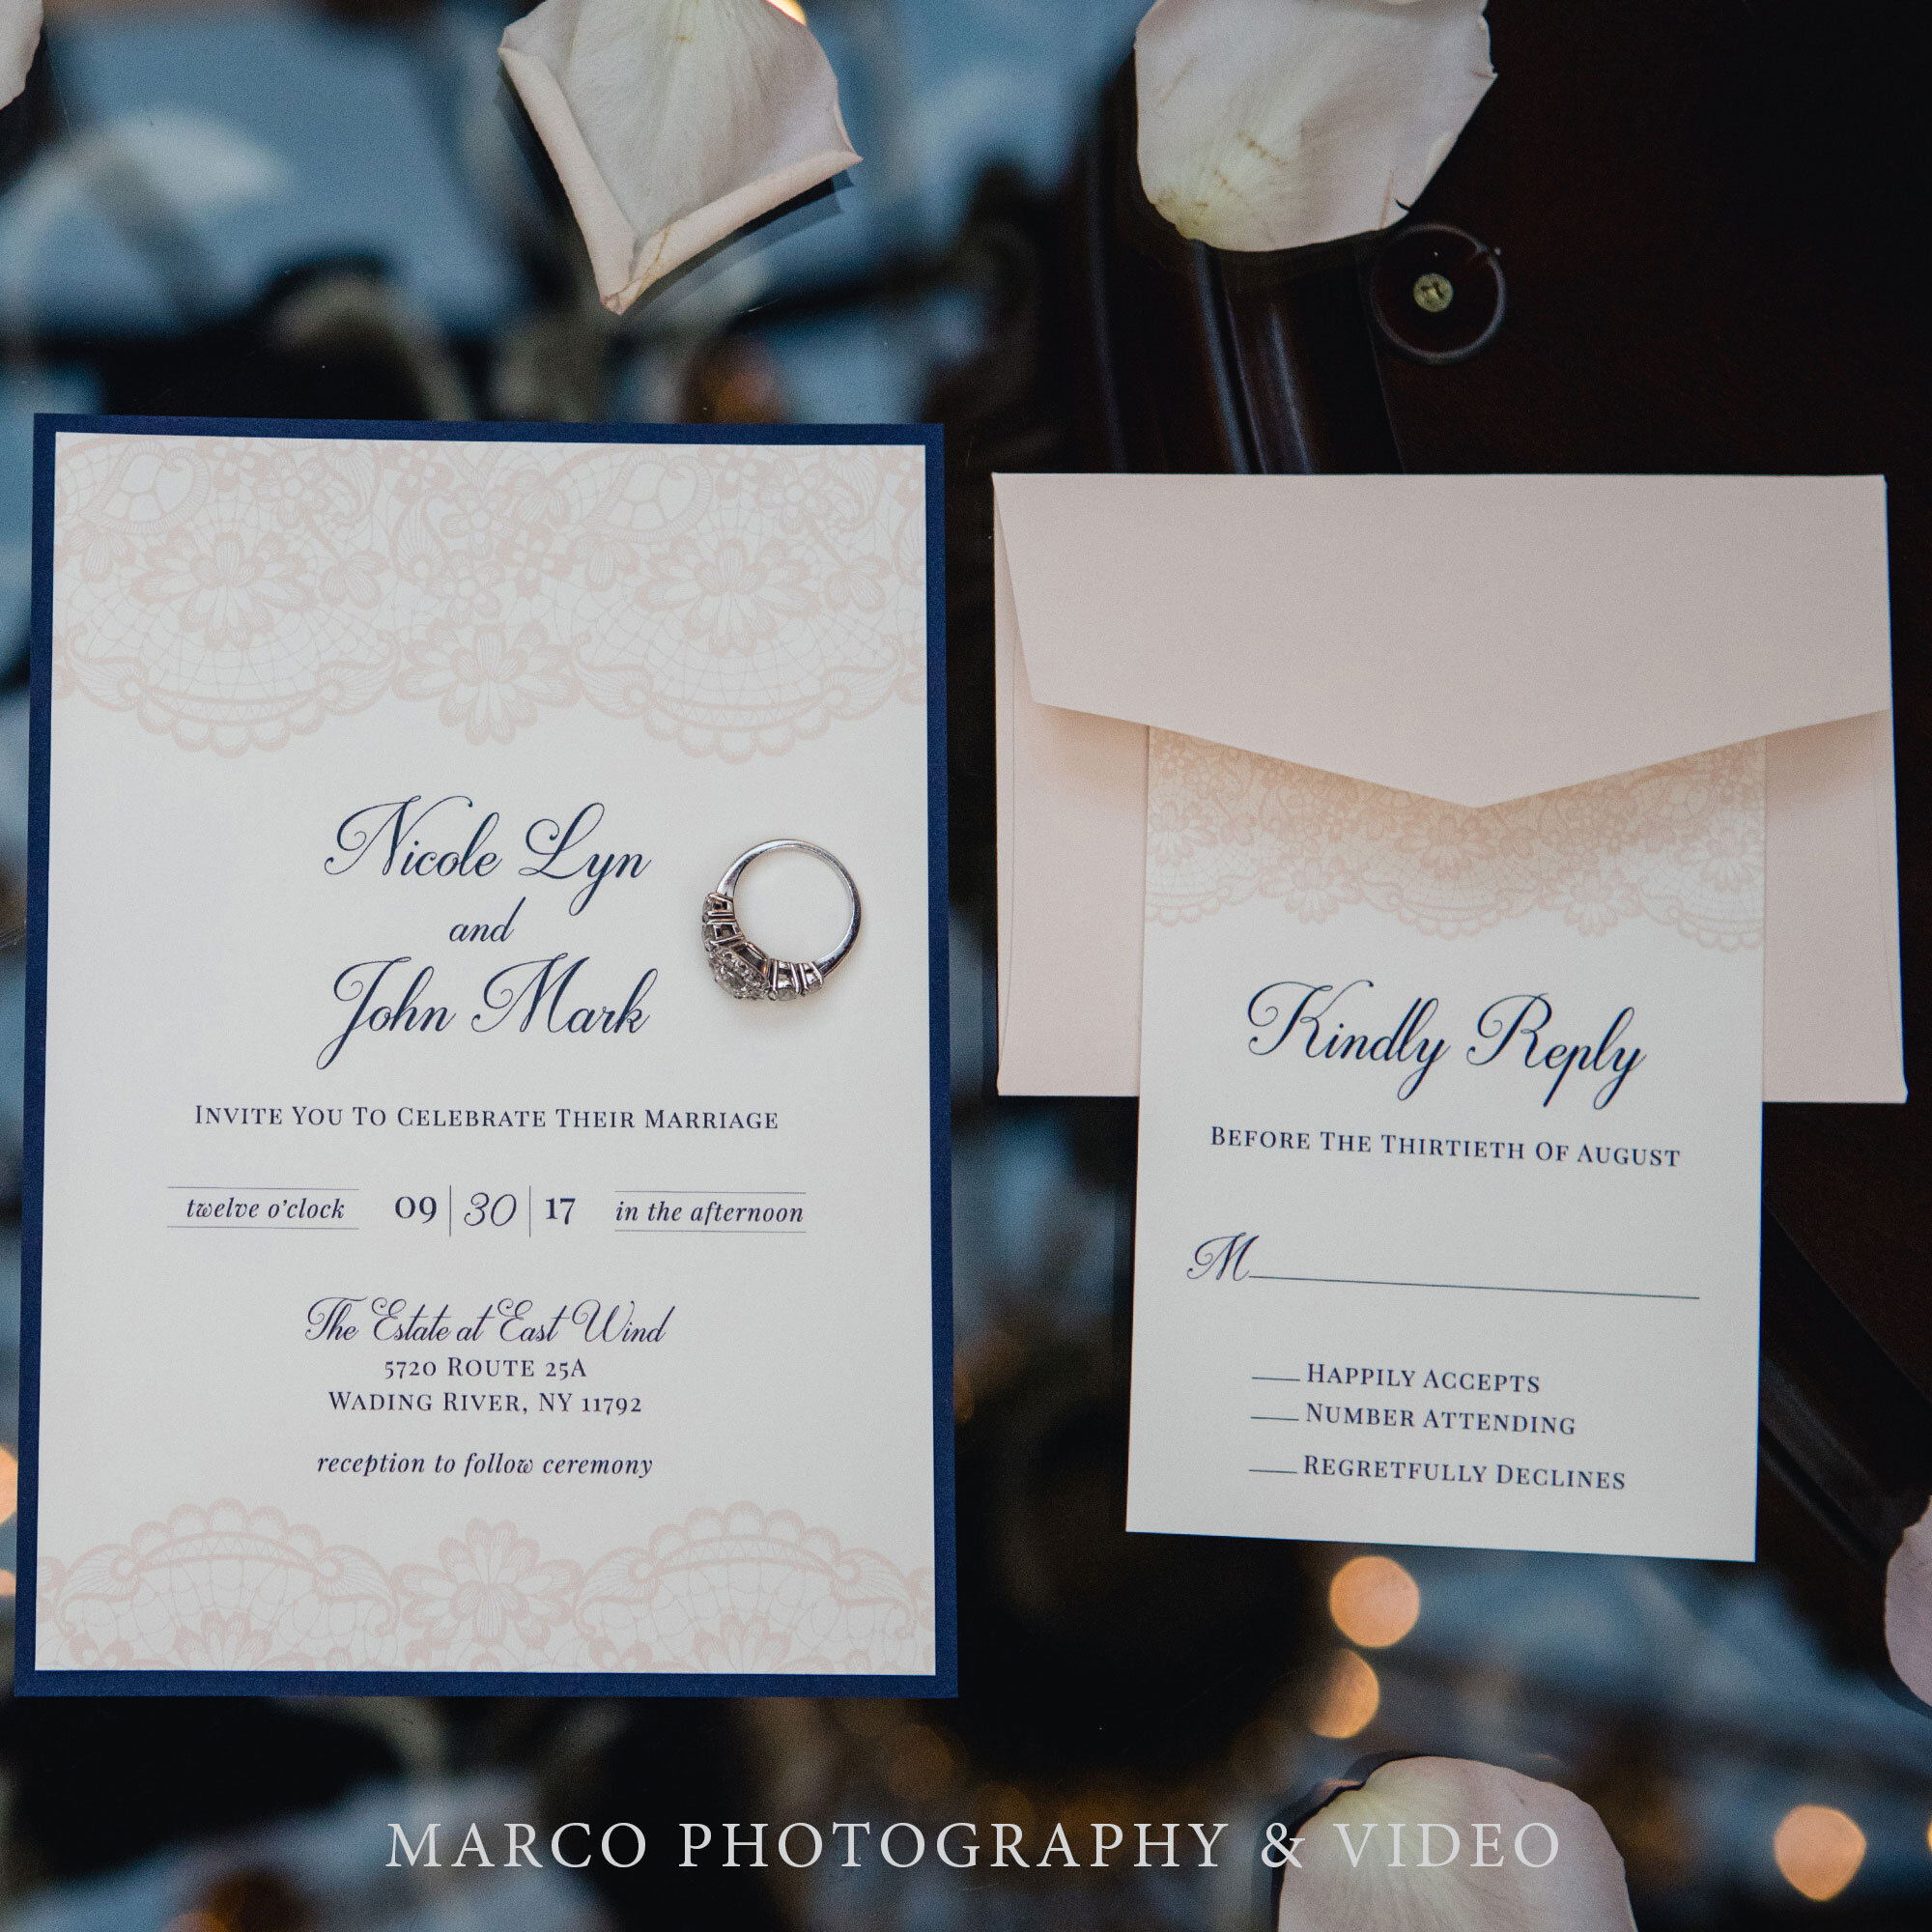 robedeedesign-weddinginvitation-eastwind-longisland-marcophotographyandvideo.jpg